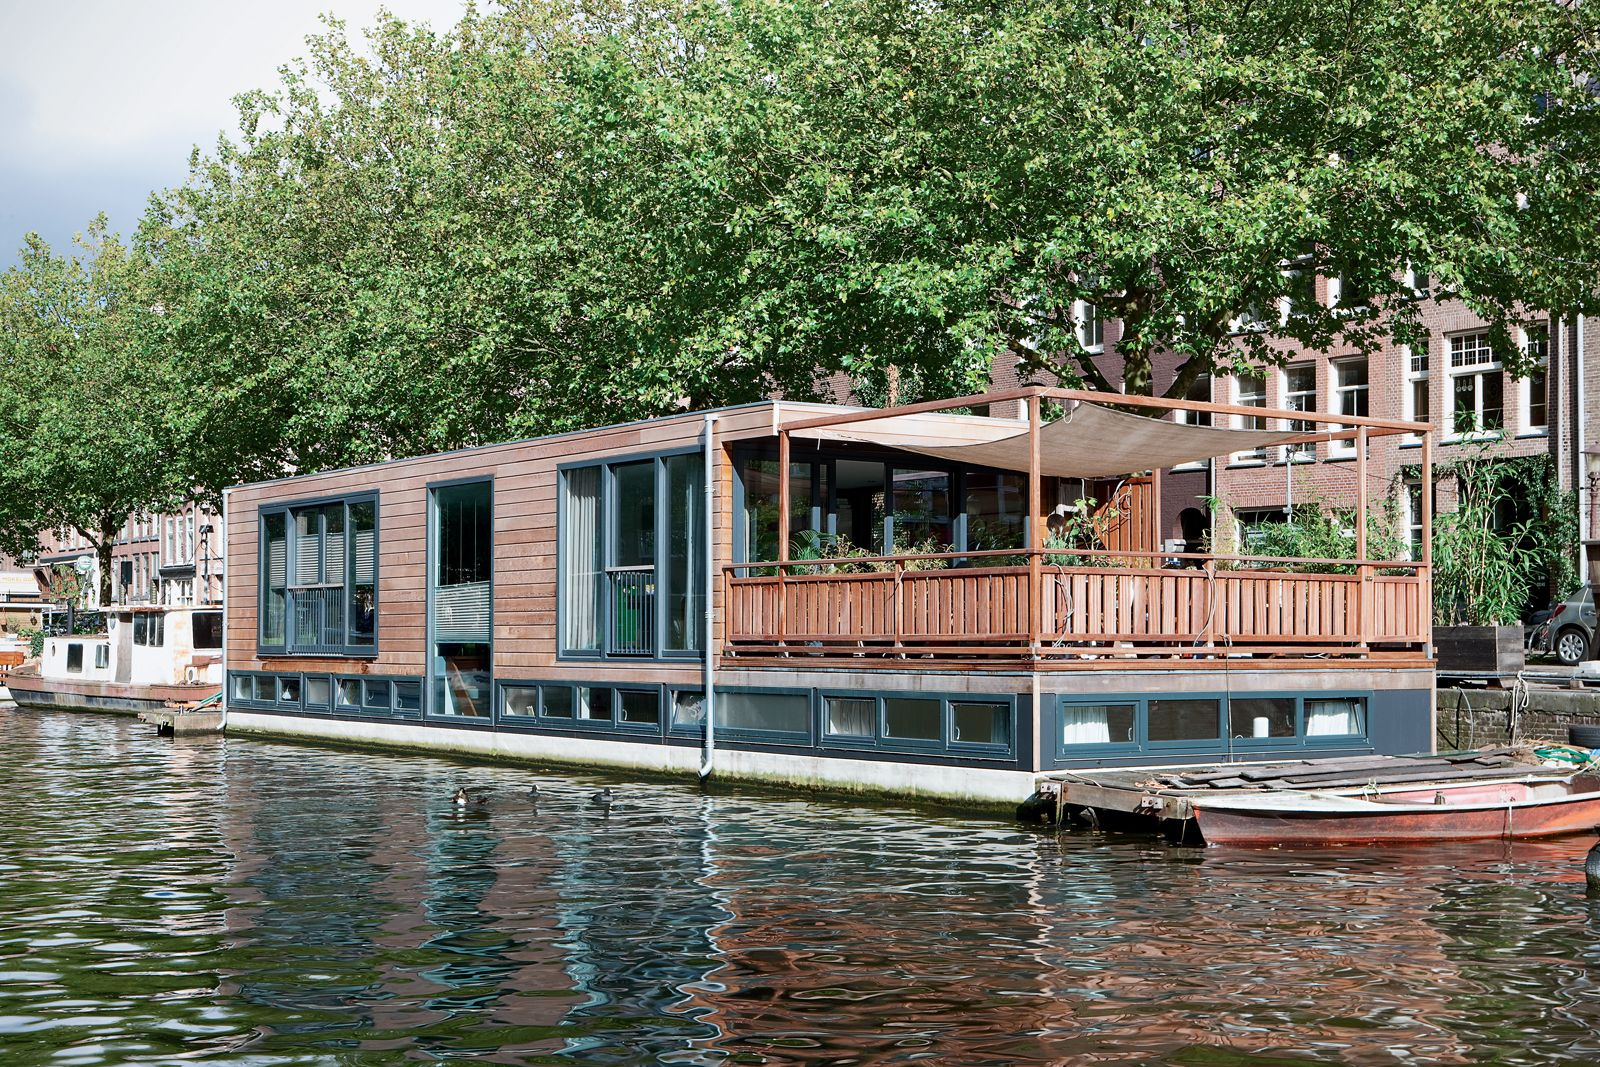 A houseboat in Amsterdam with large low windows